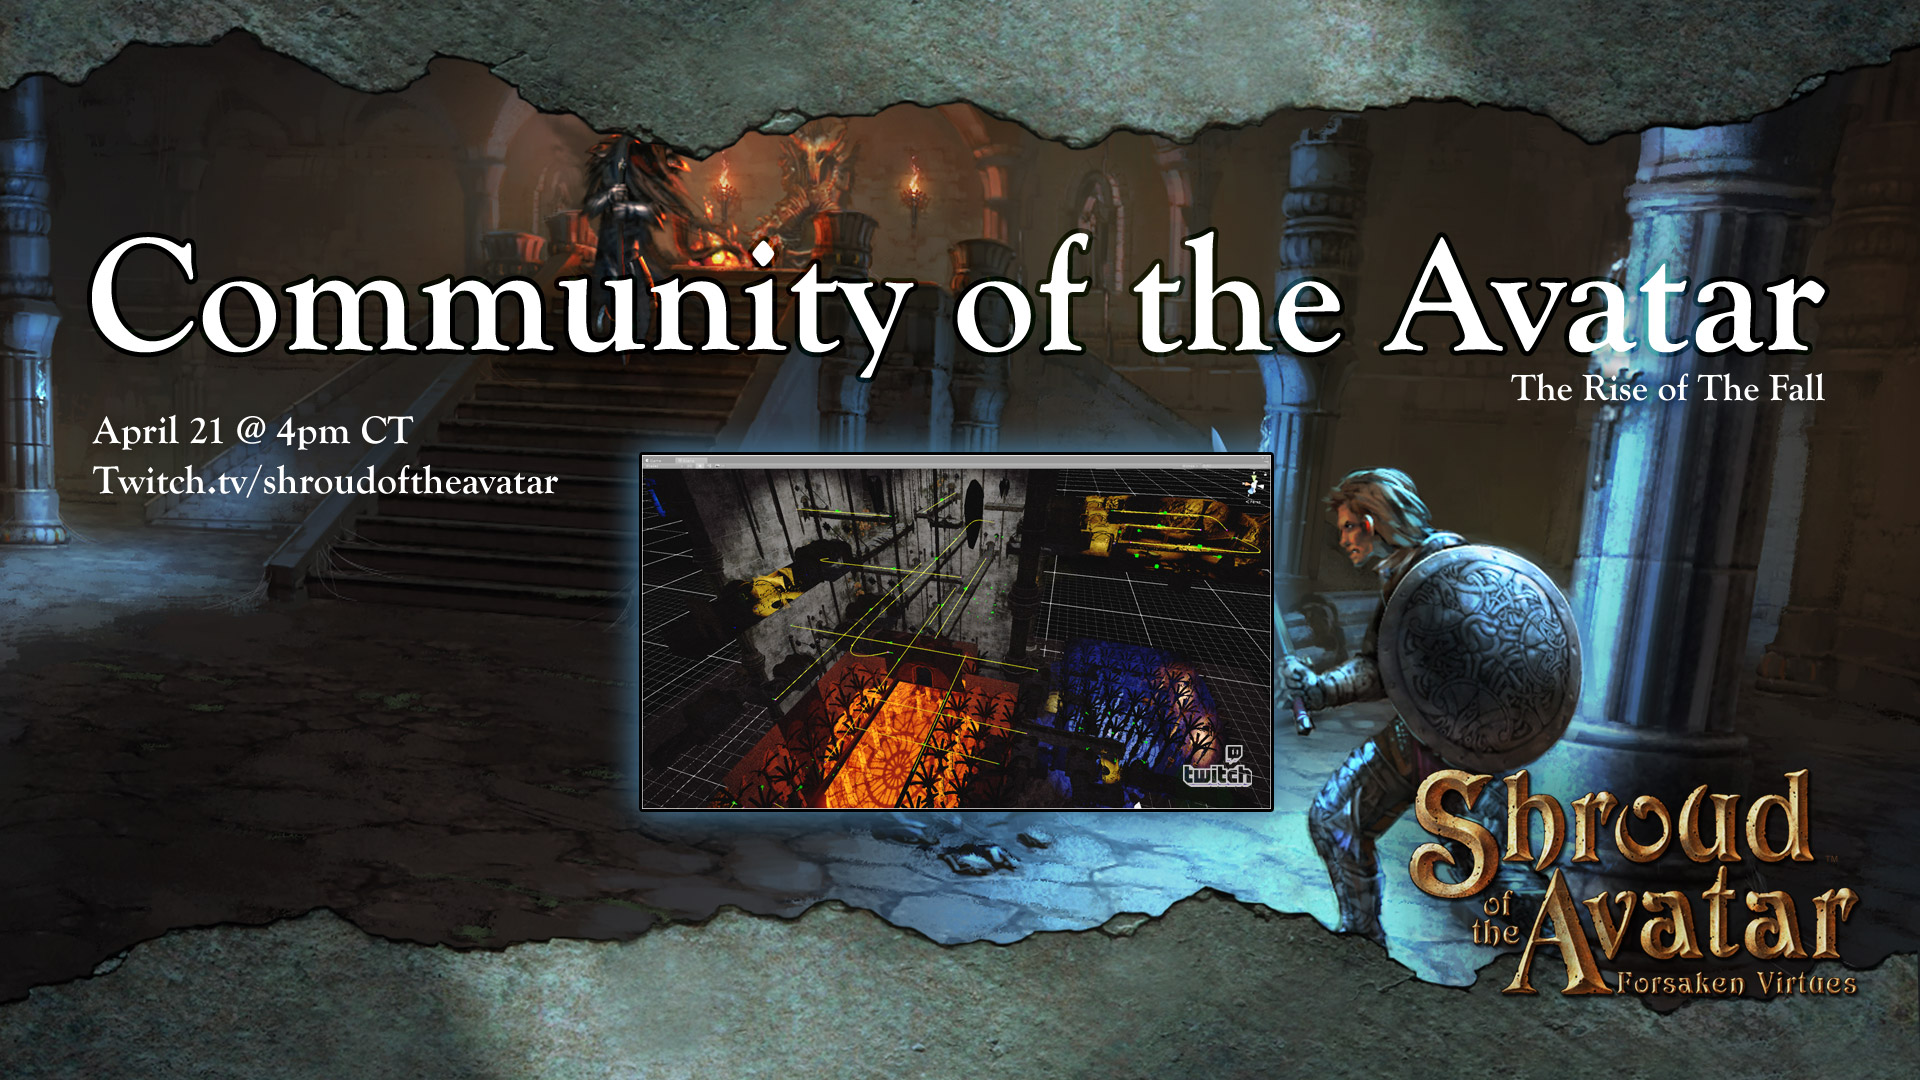 Community of the Avatar